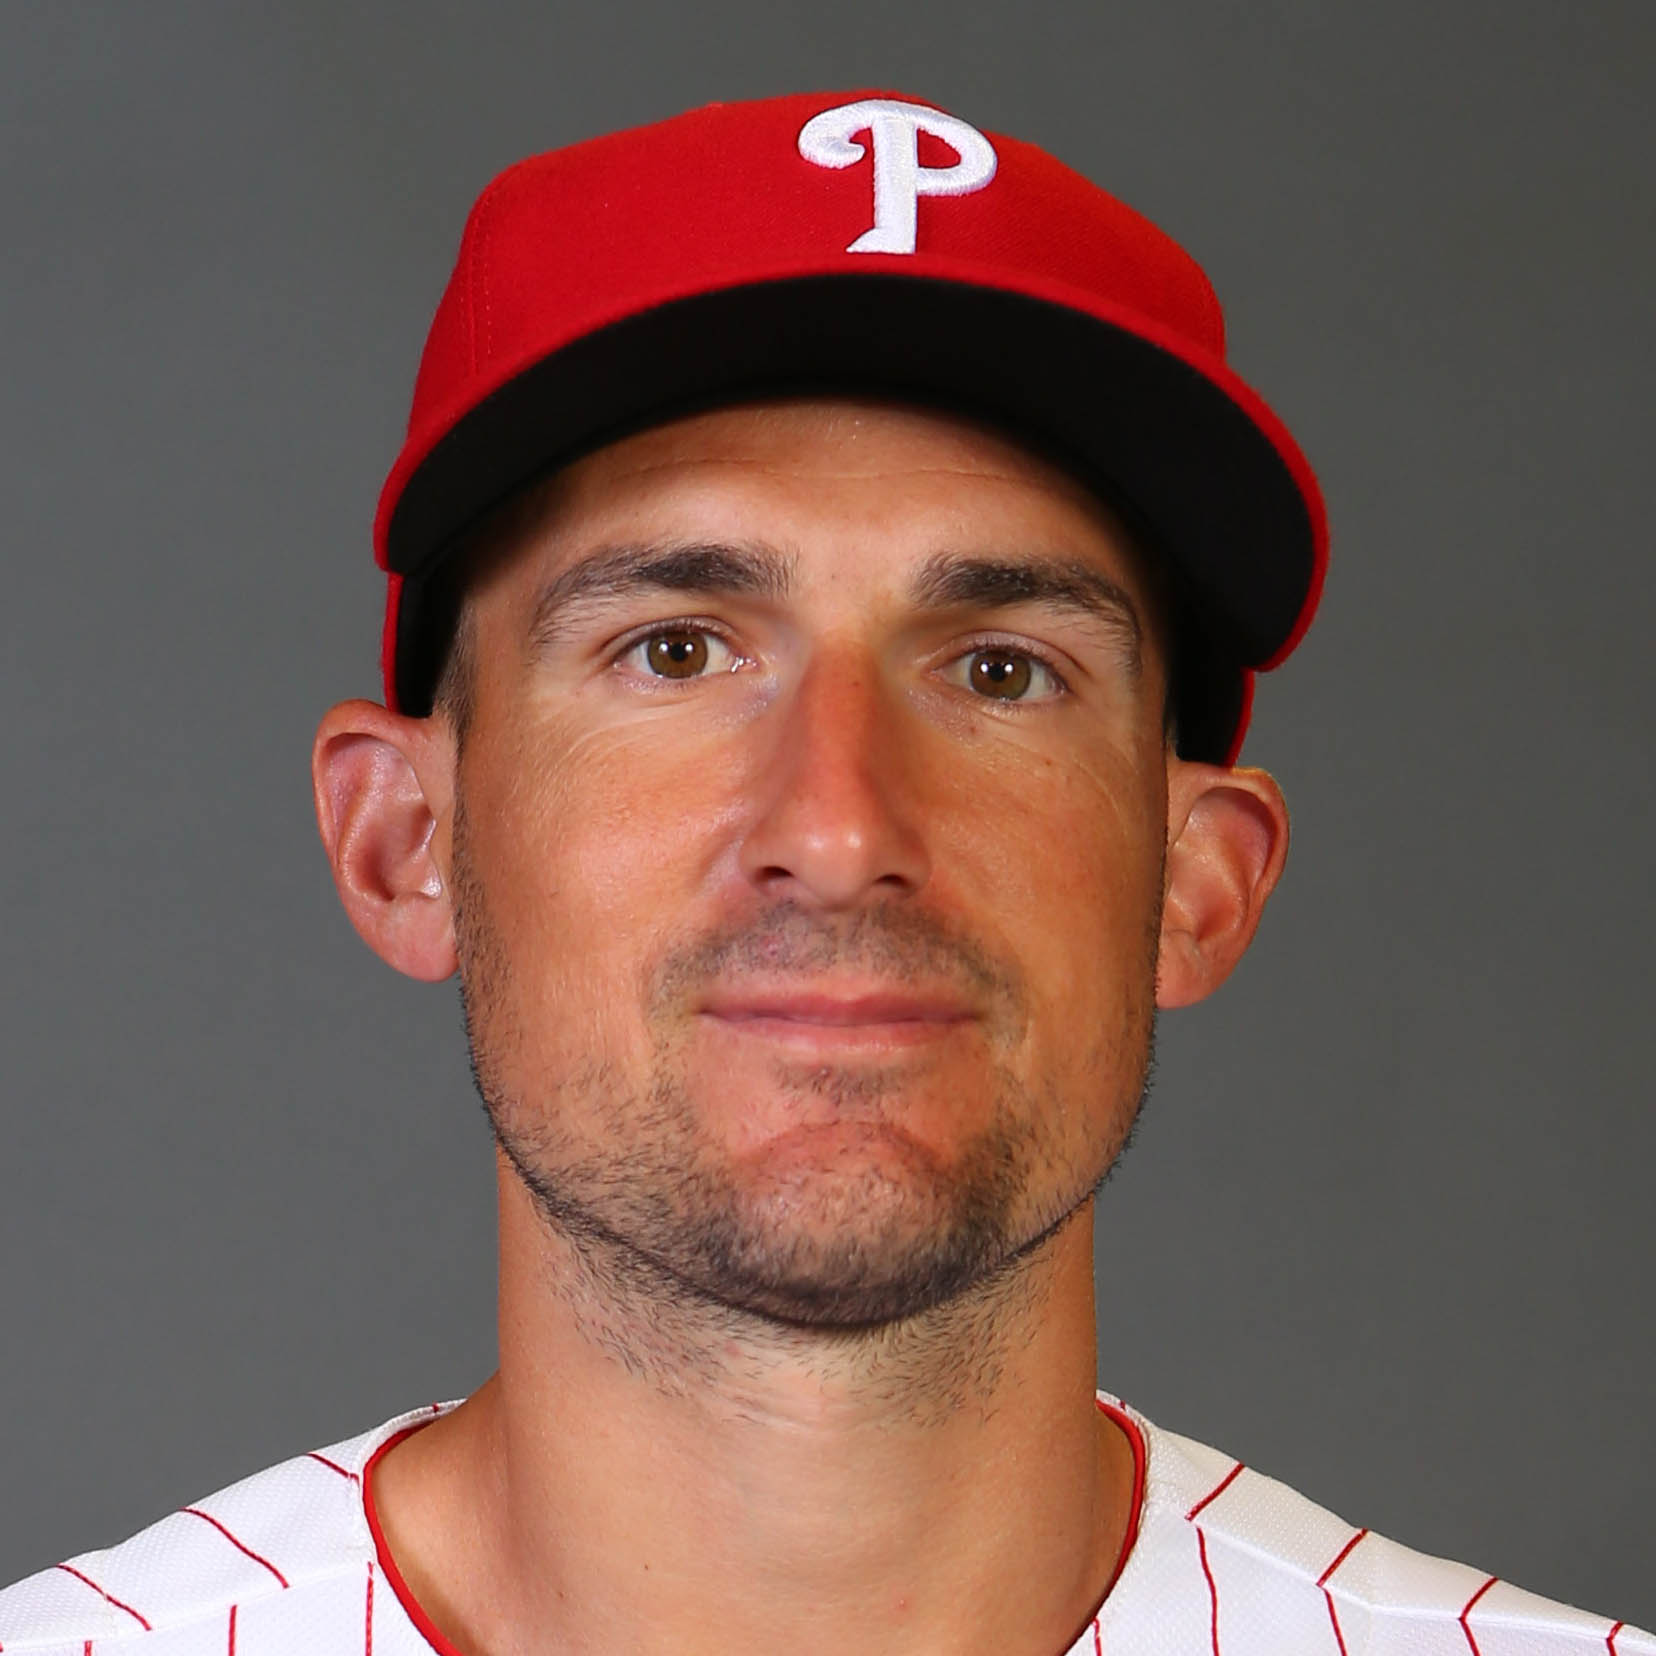 Ryan Flaherty (L) Headshot